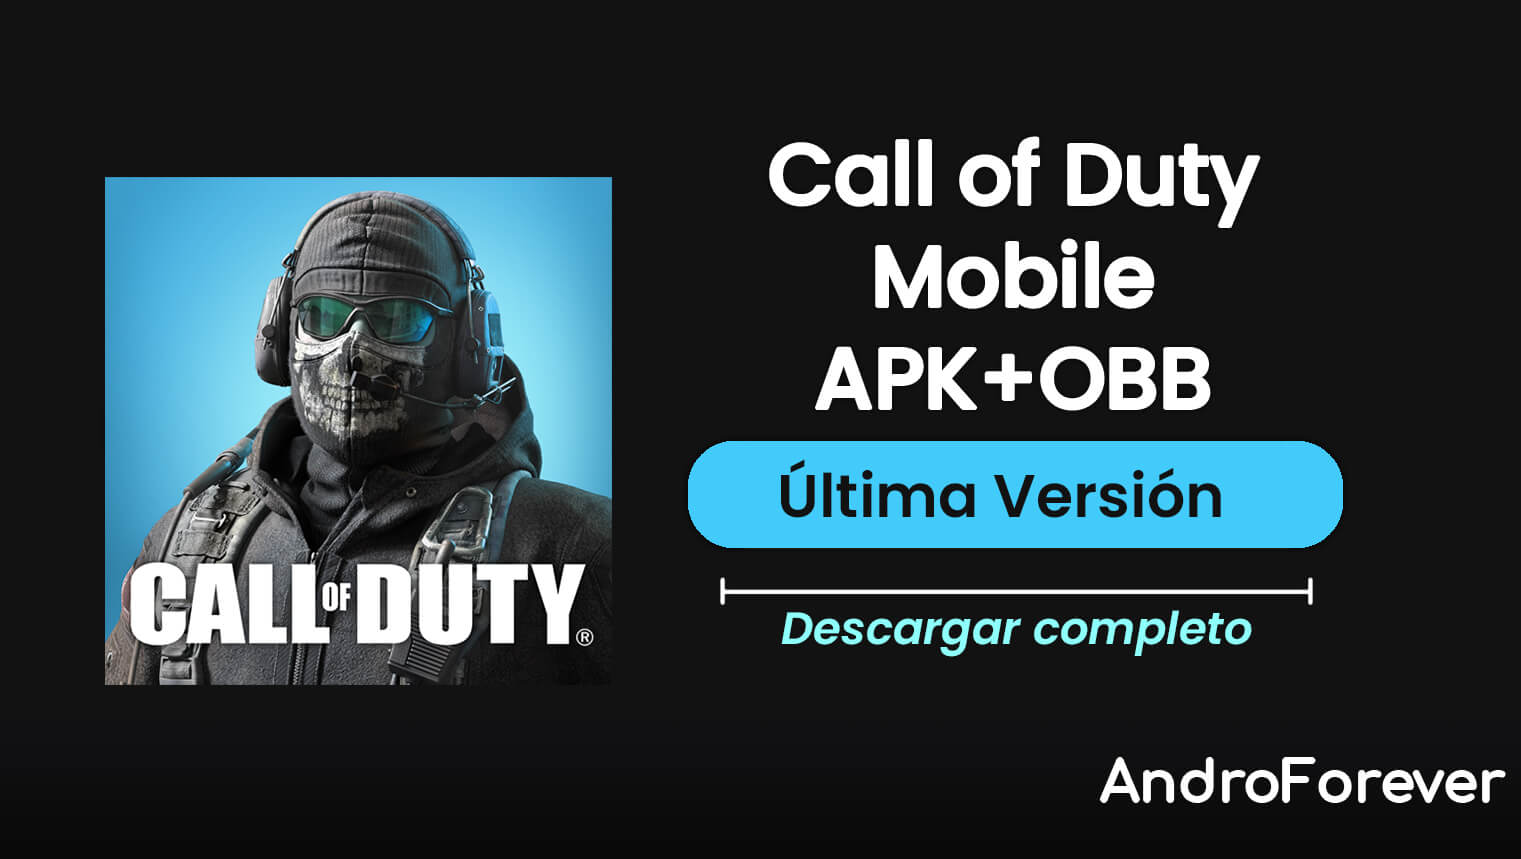 Call of Duty Mobile APK+OBB v1.0.24 (Android)